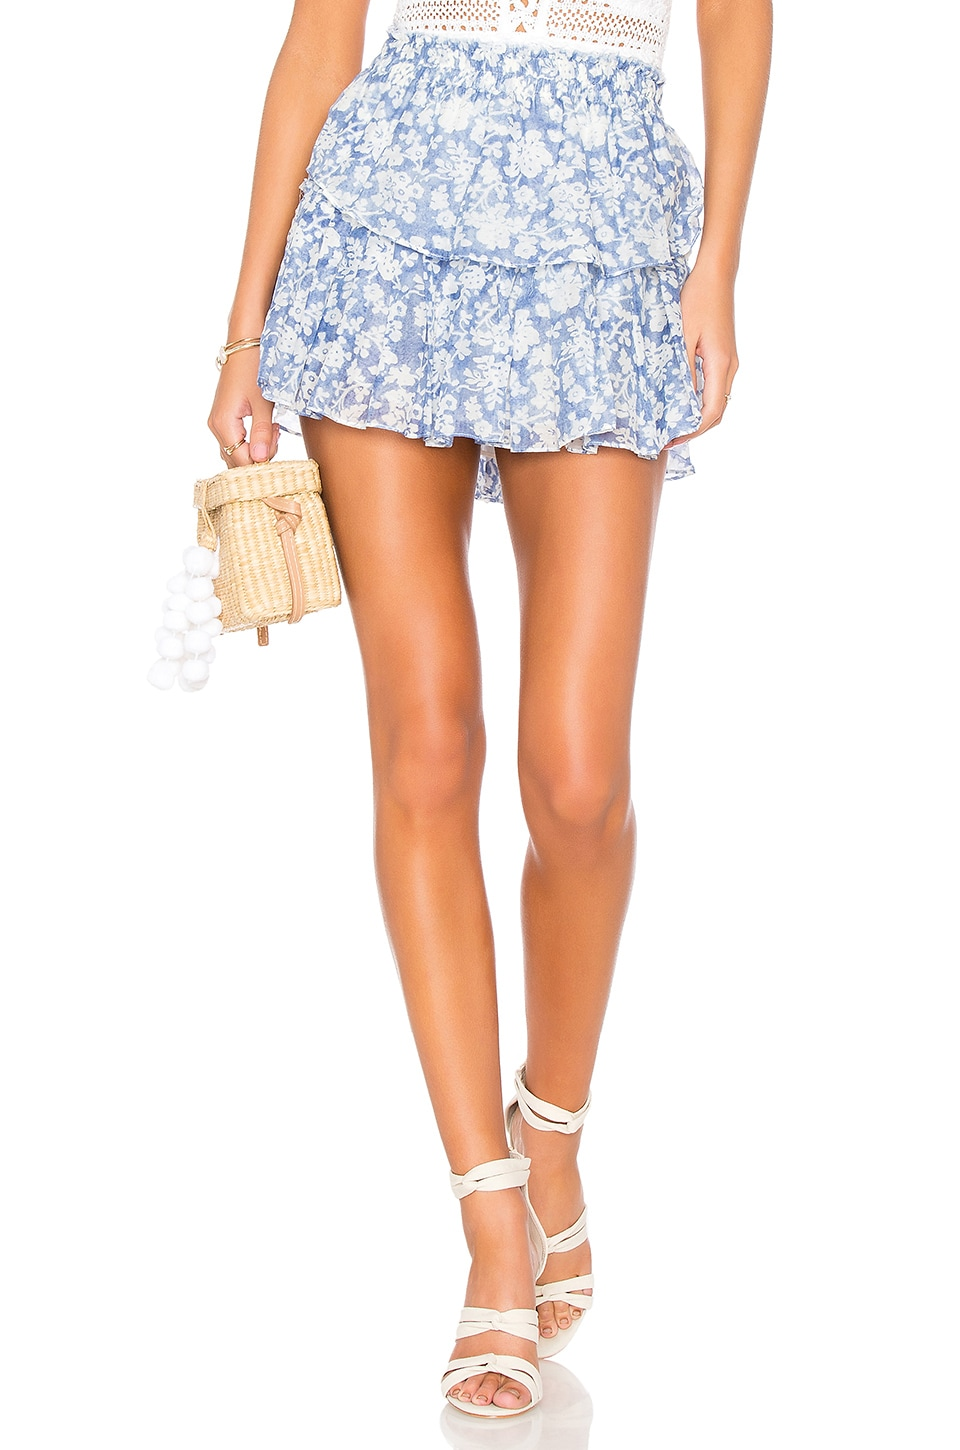 LoveShackFancy Ruffle Mini Skirt in Biscay Blue